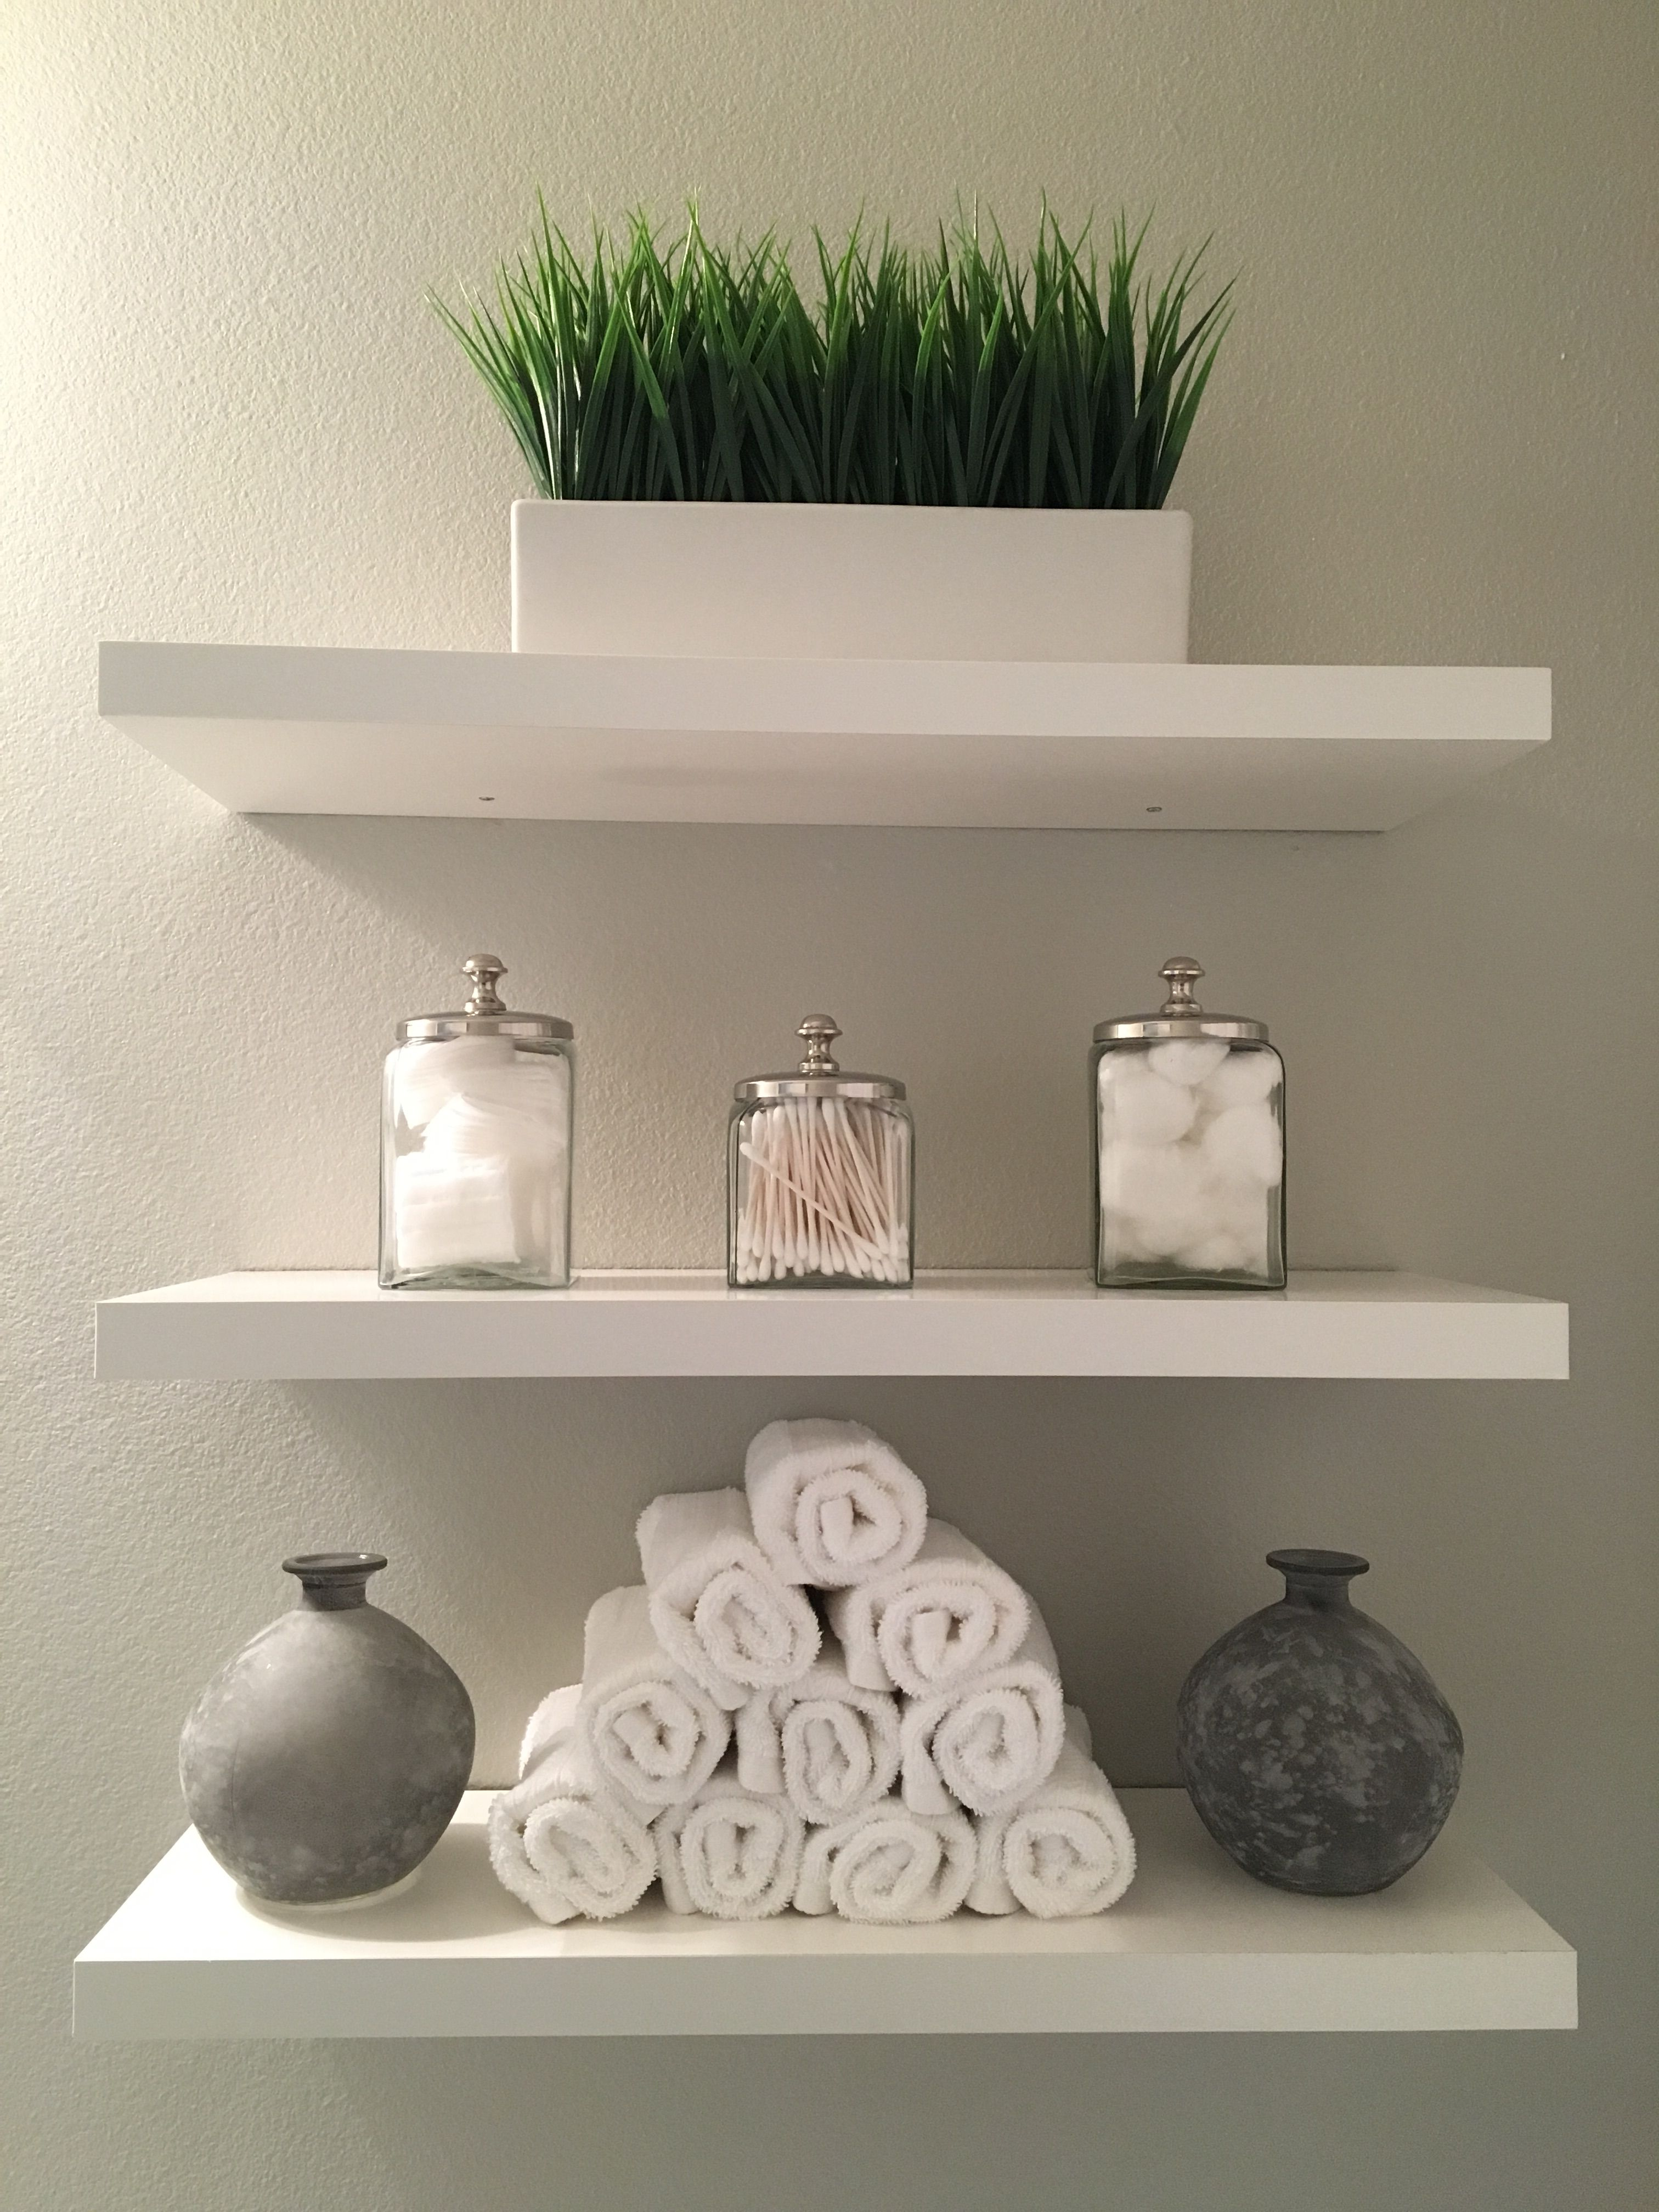 Bathroom Shelves Modern Clean White And Grey Added Shelves